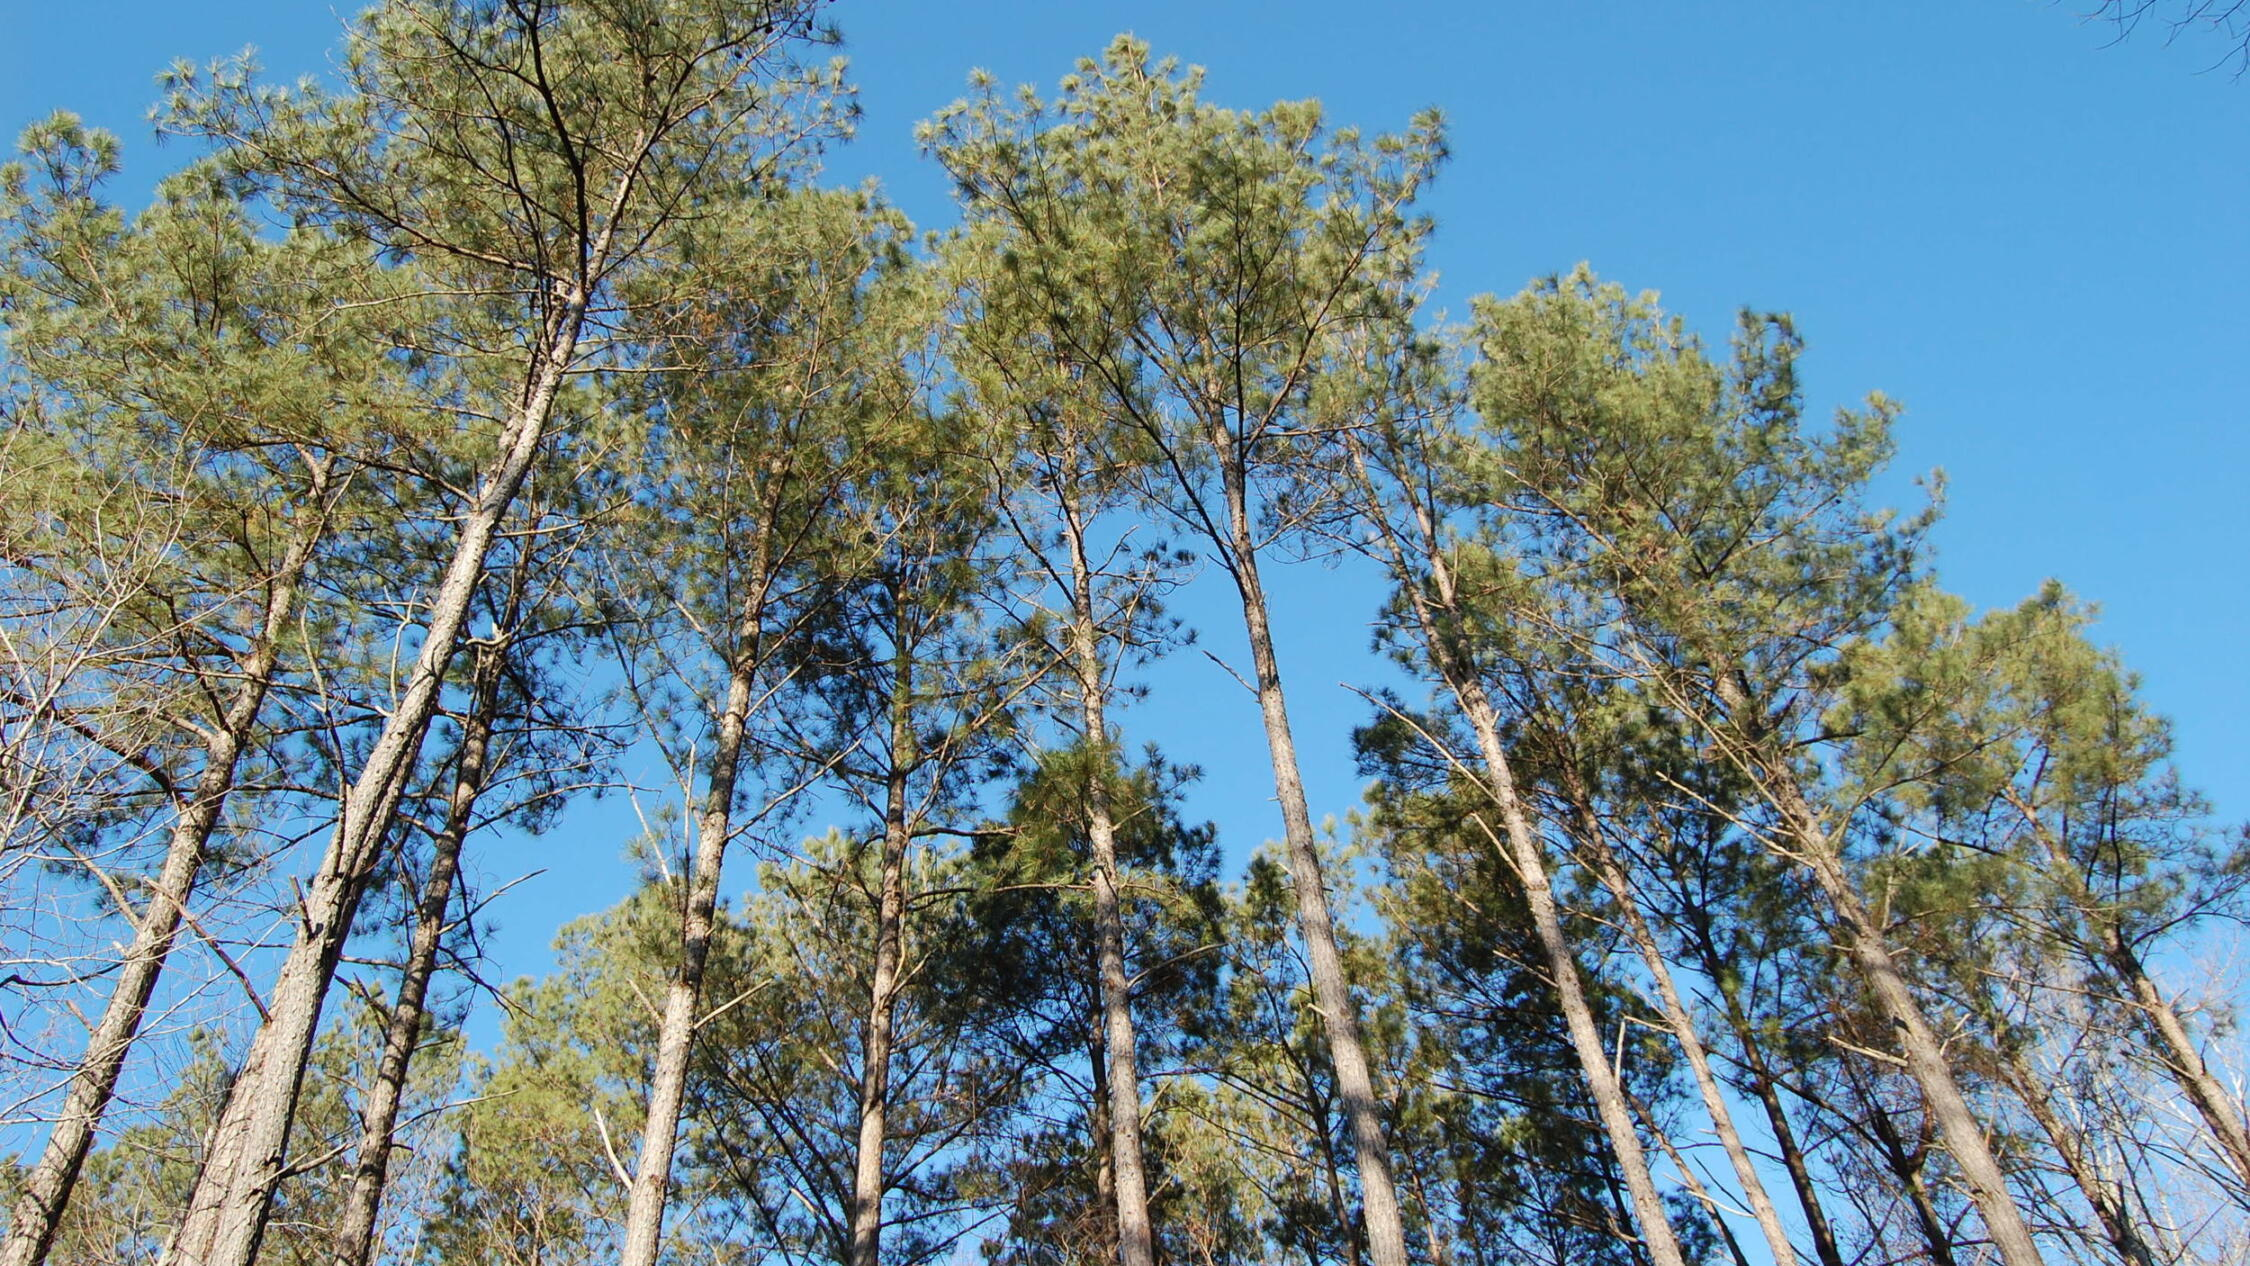 View looking up into trees under a blue sky